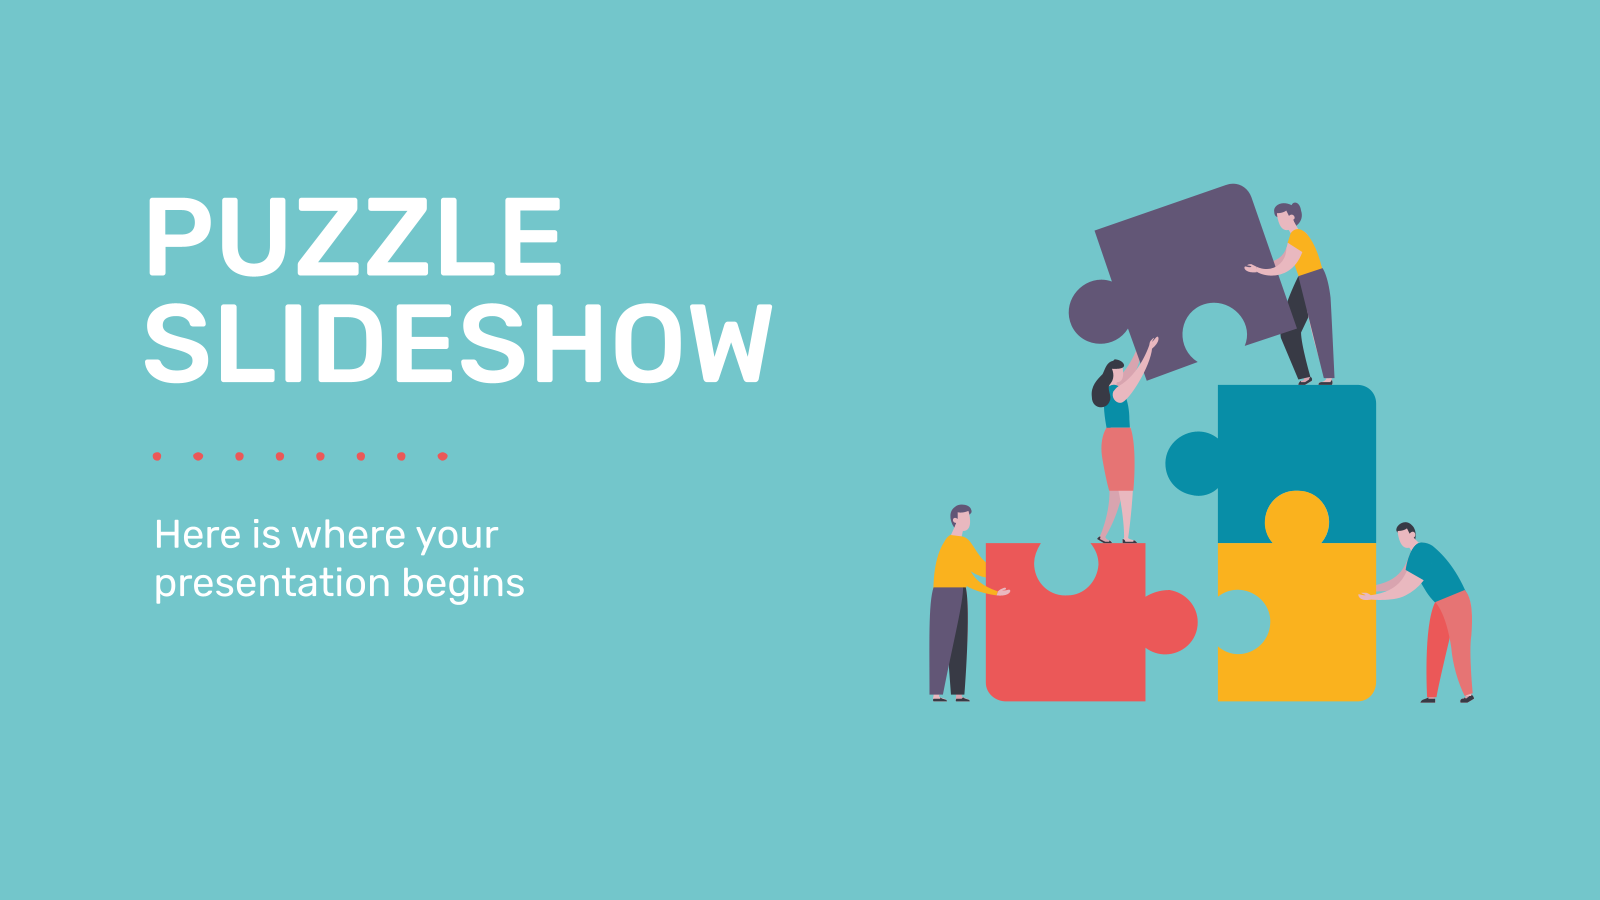 Puzzle Slideshow presentation template